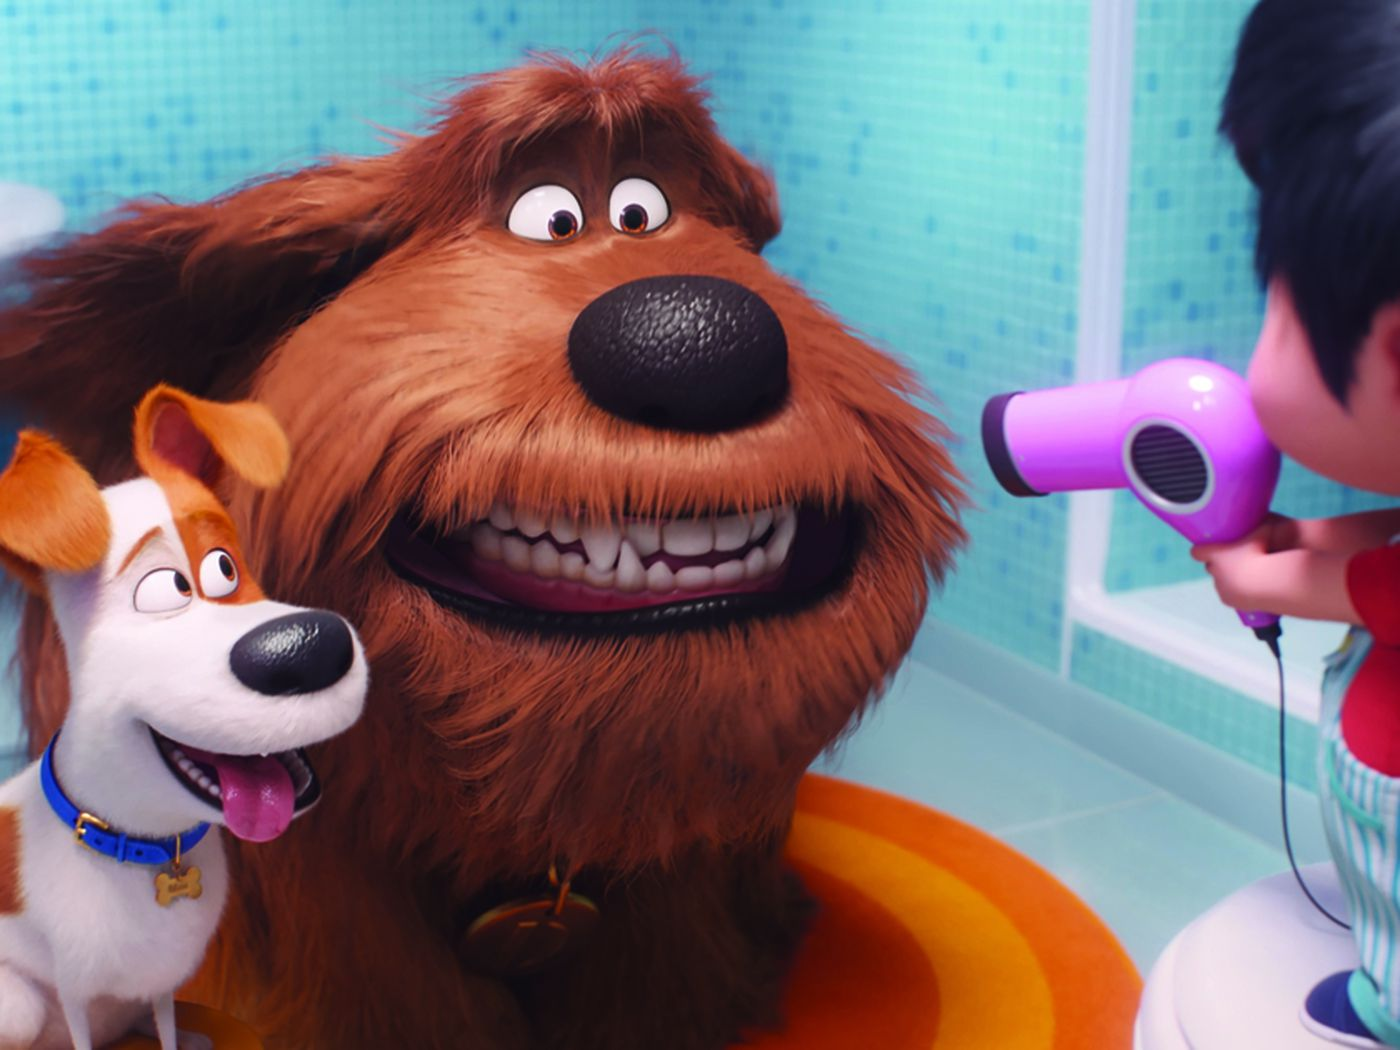 Movie Review Secret Life Of Pets 2 Has Cute Animals Harrison Ford And A Forgettable Storyline Deseret News